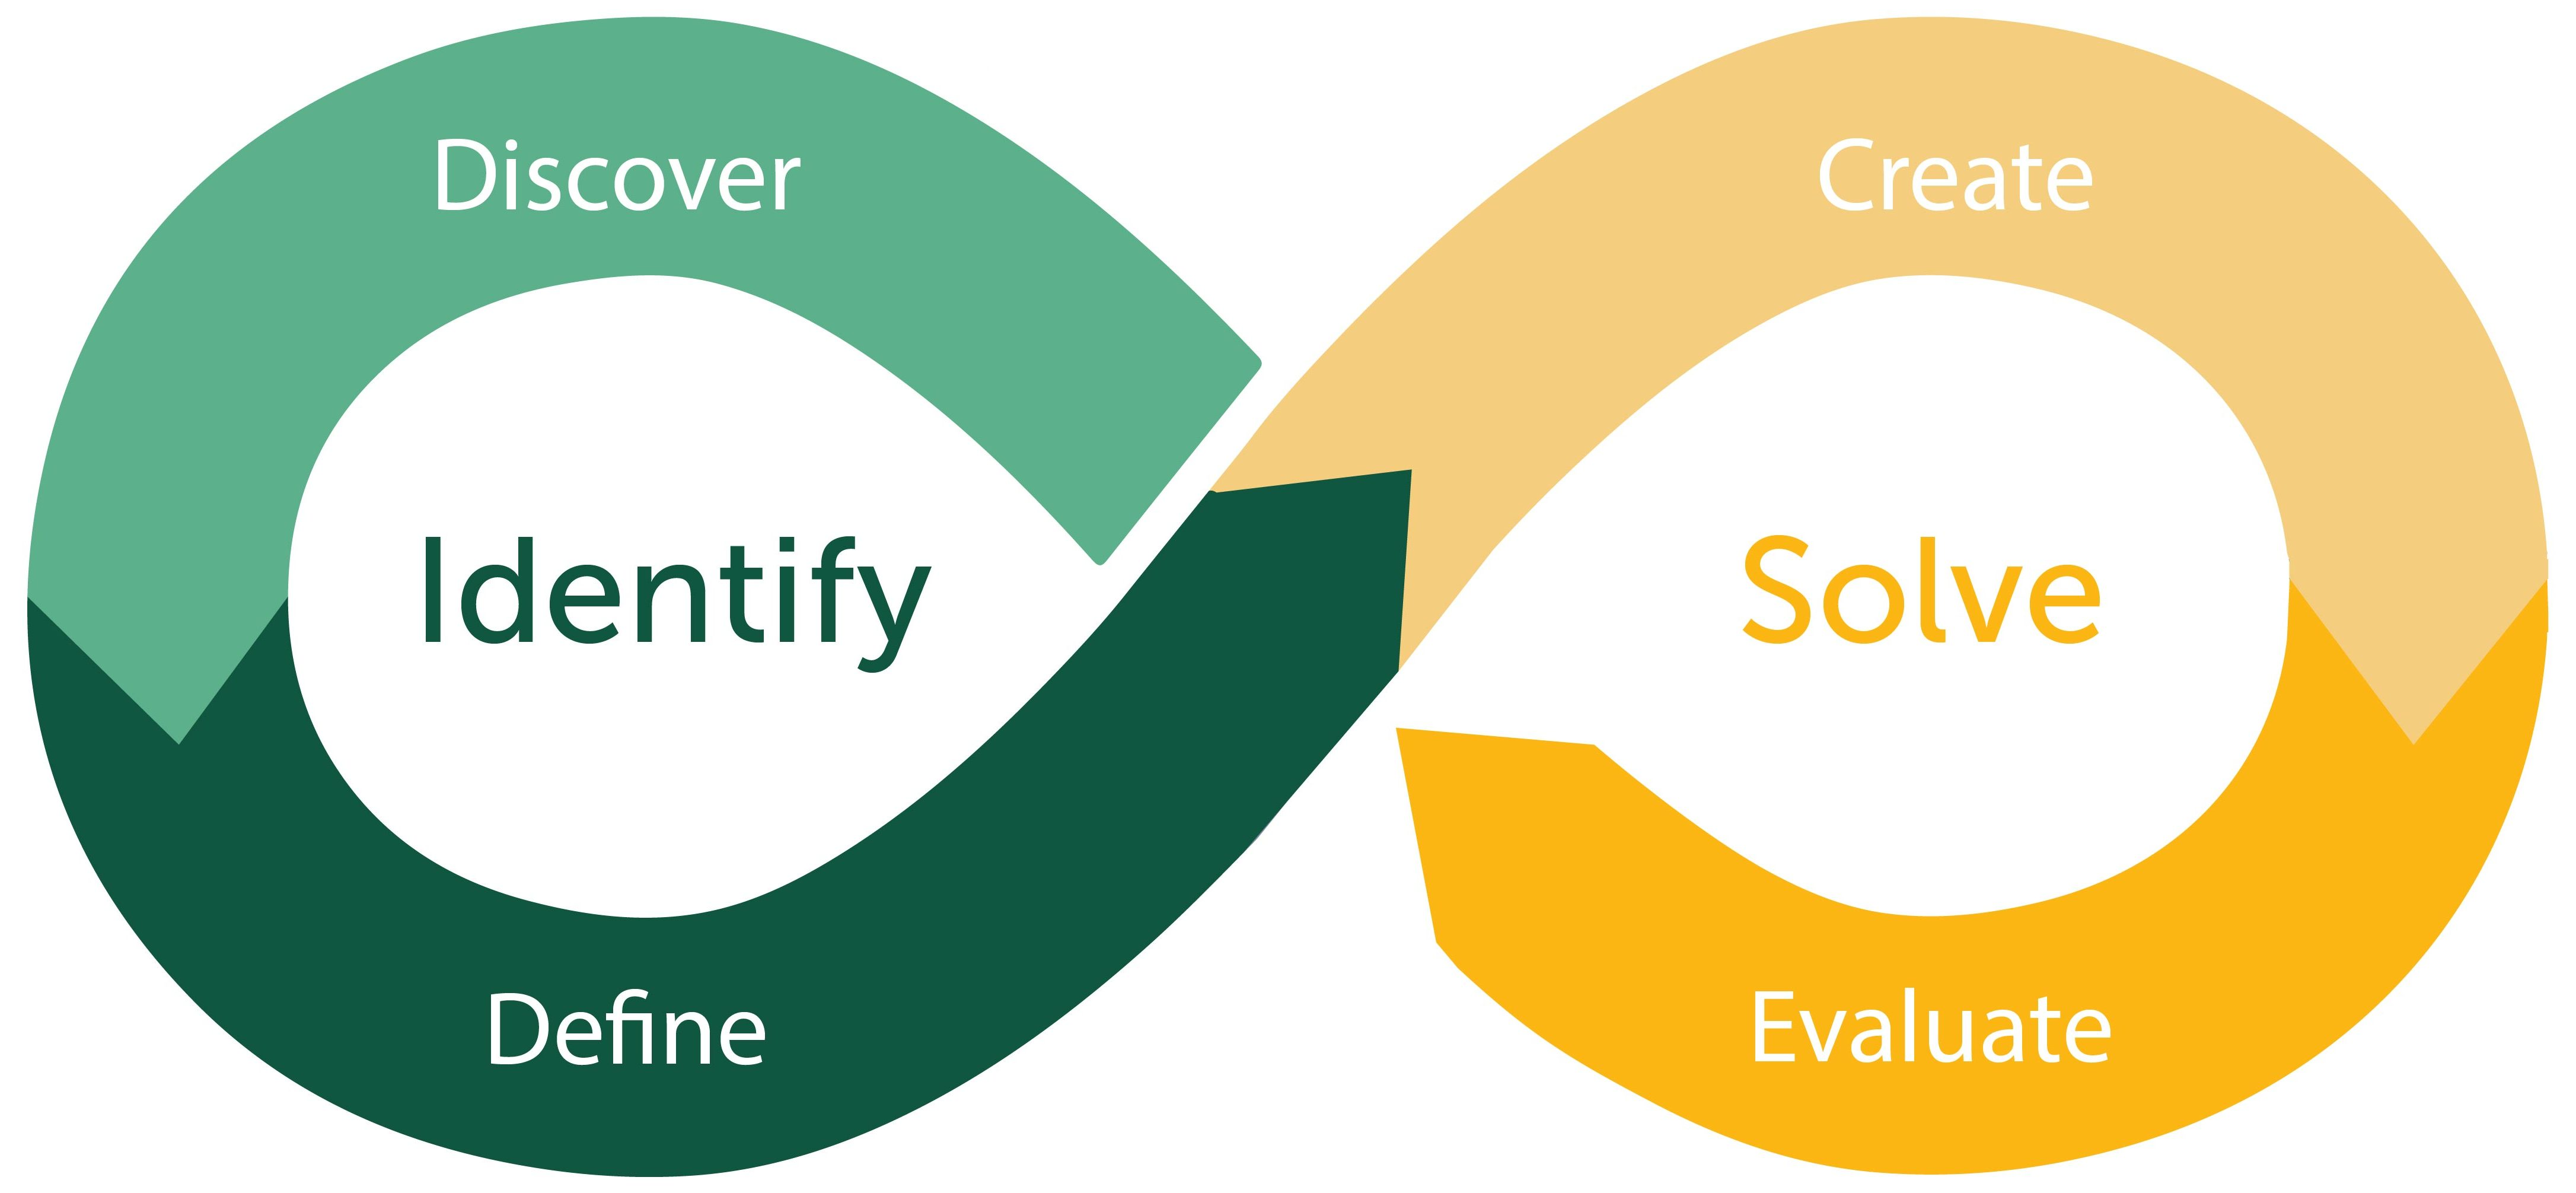 Graphic of Infinity-shaped design thinking framework with two phases and four modes. 1. Discover. 2. Define. 3. Create. 4. Evaluate. The identify phase contains discover and define. The solve phase contains create and evaluate.